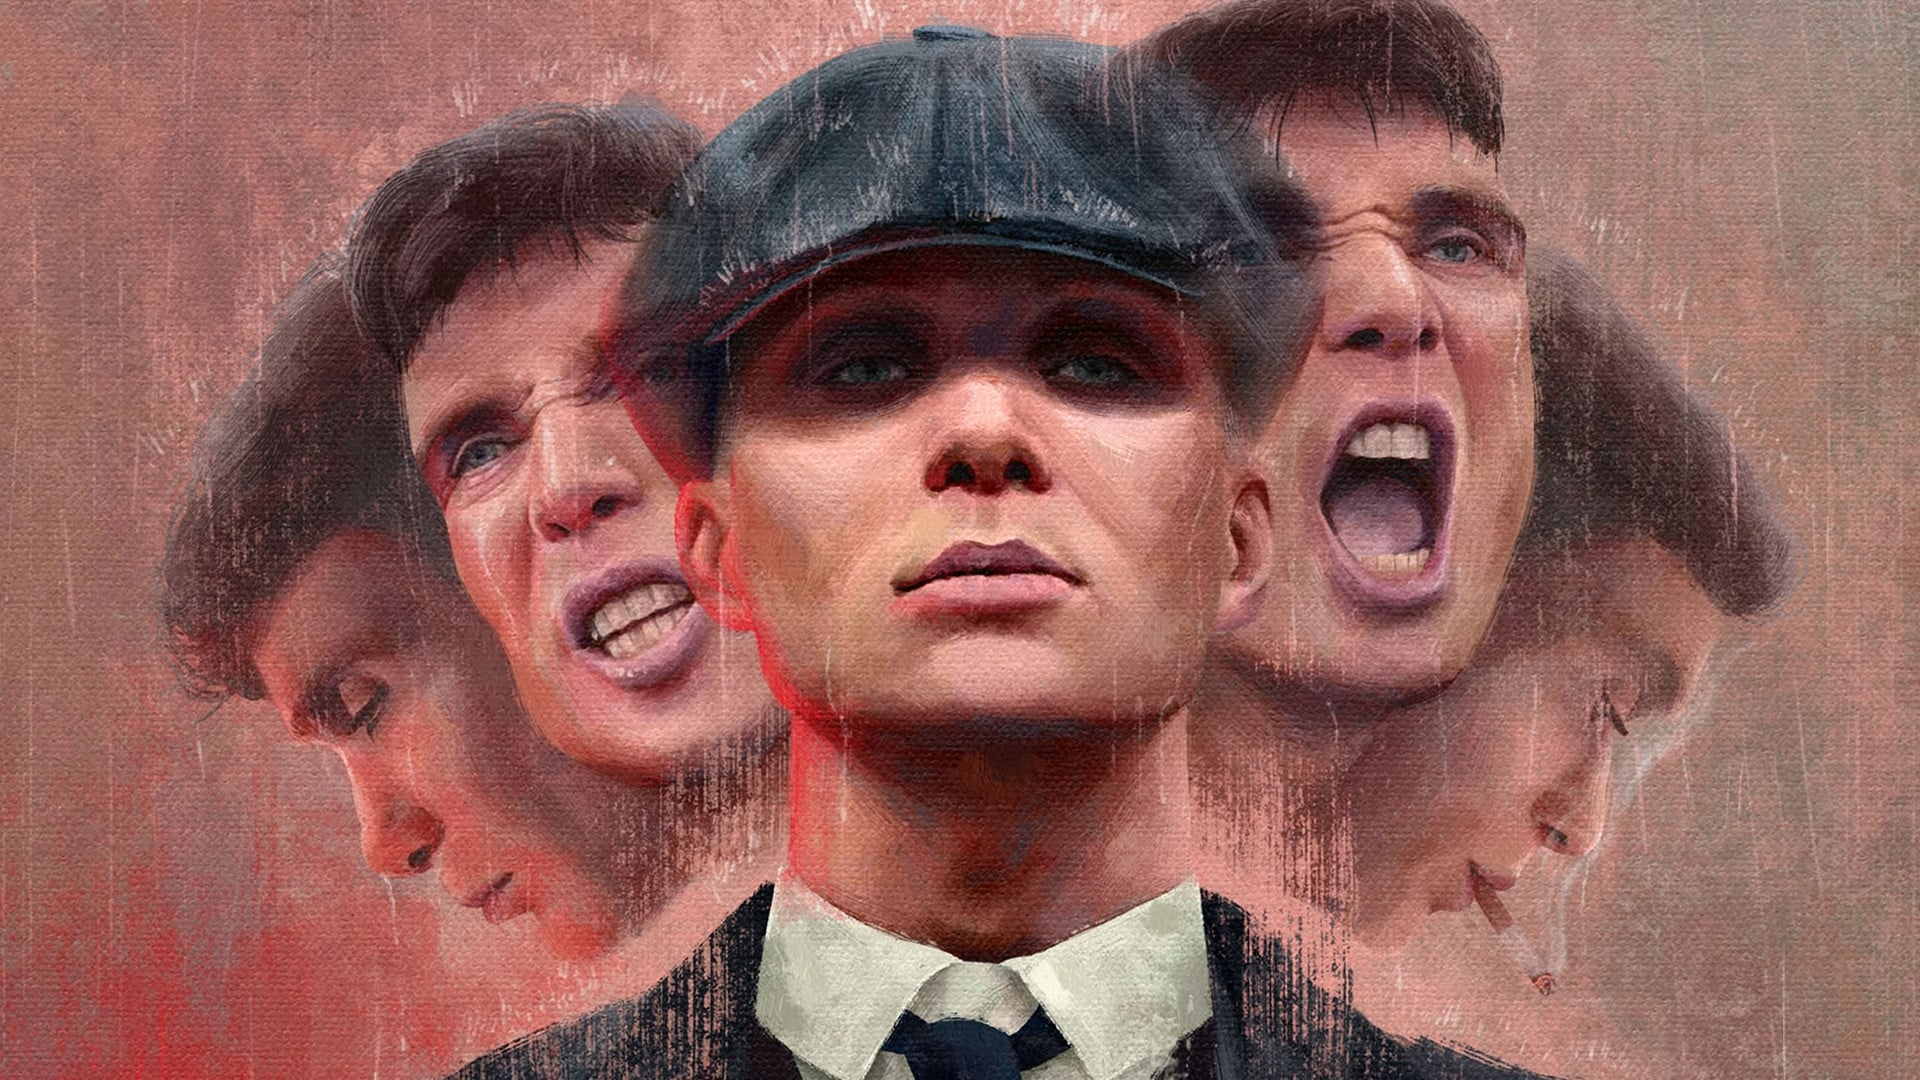 Peaky Blinders is going to end